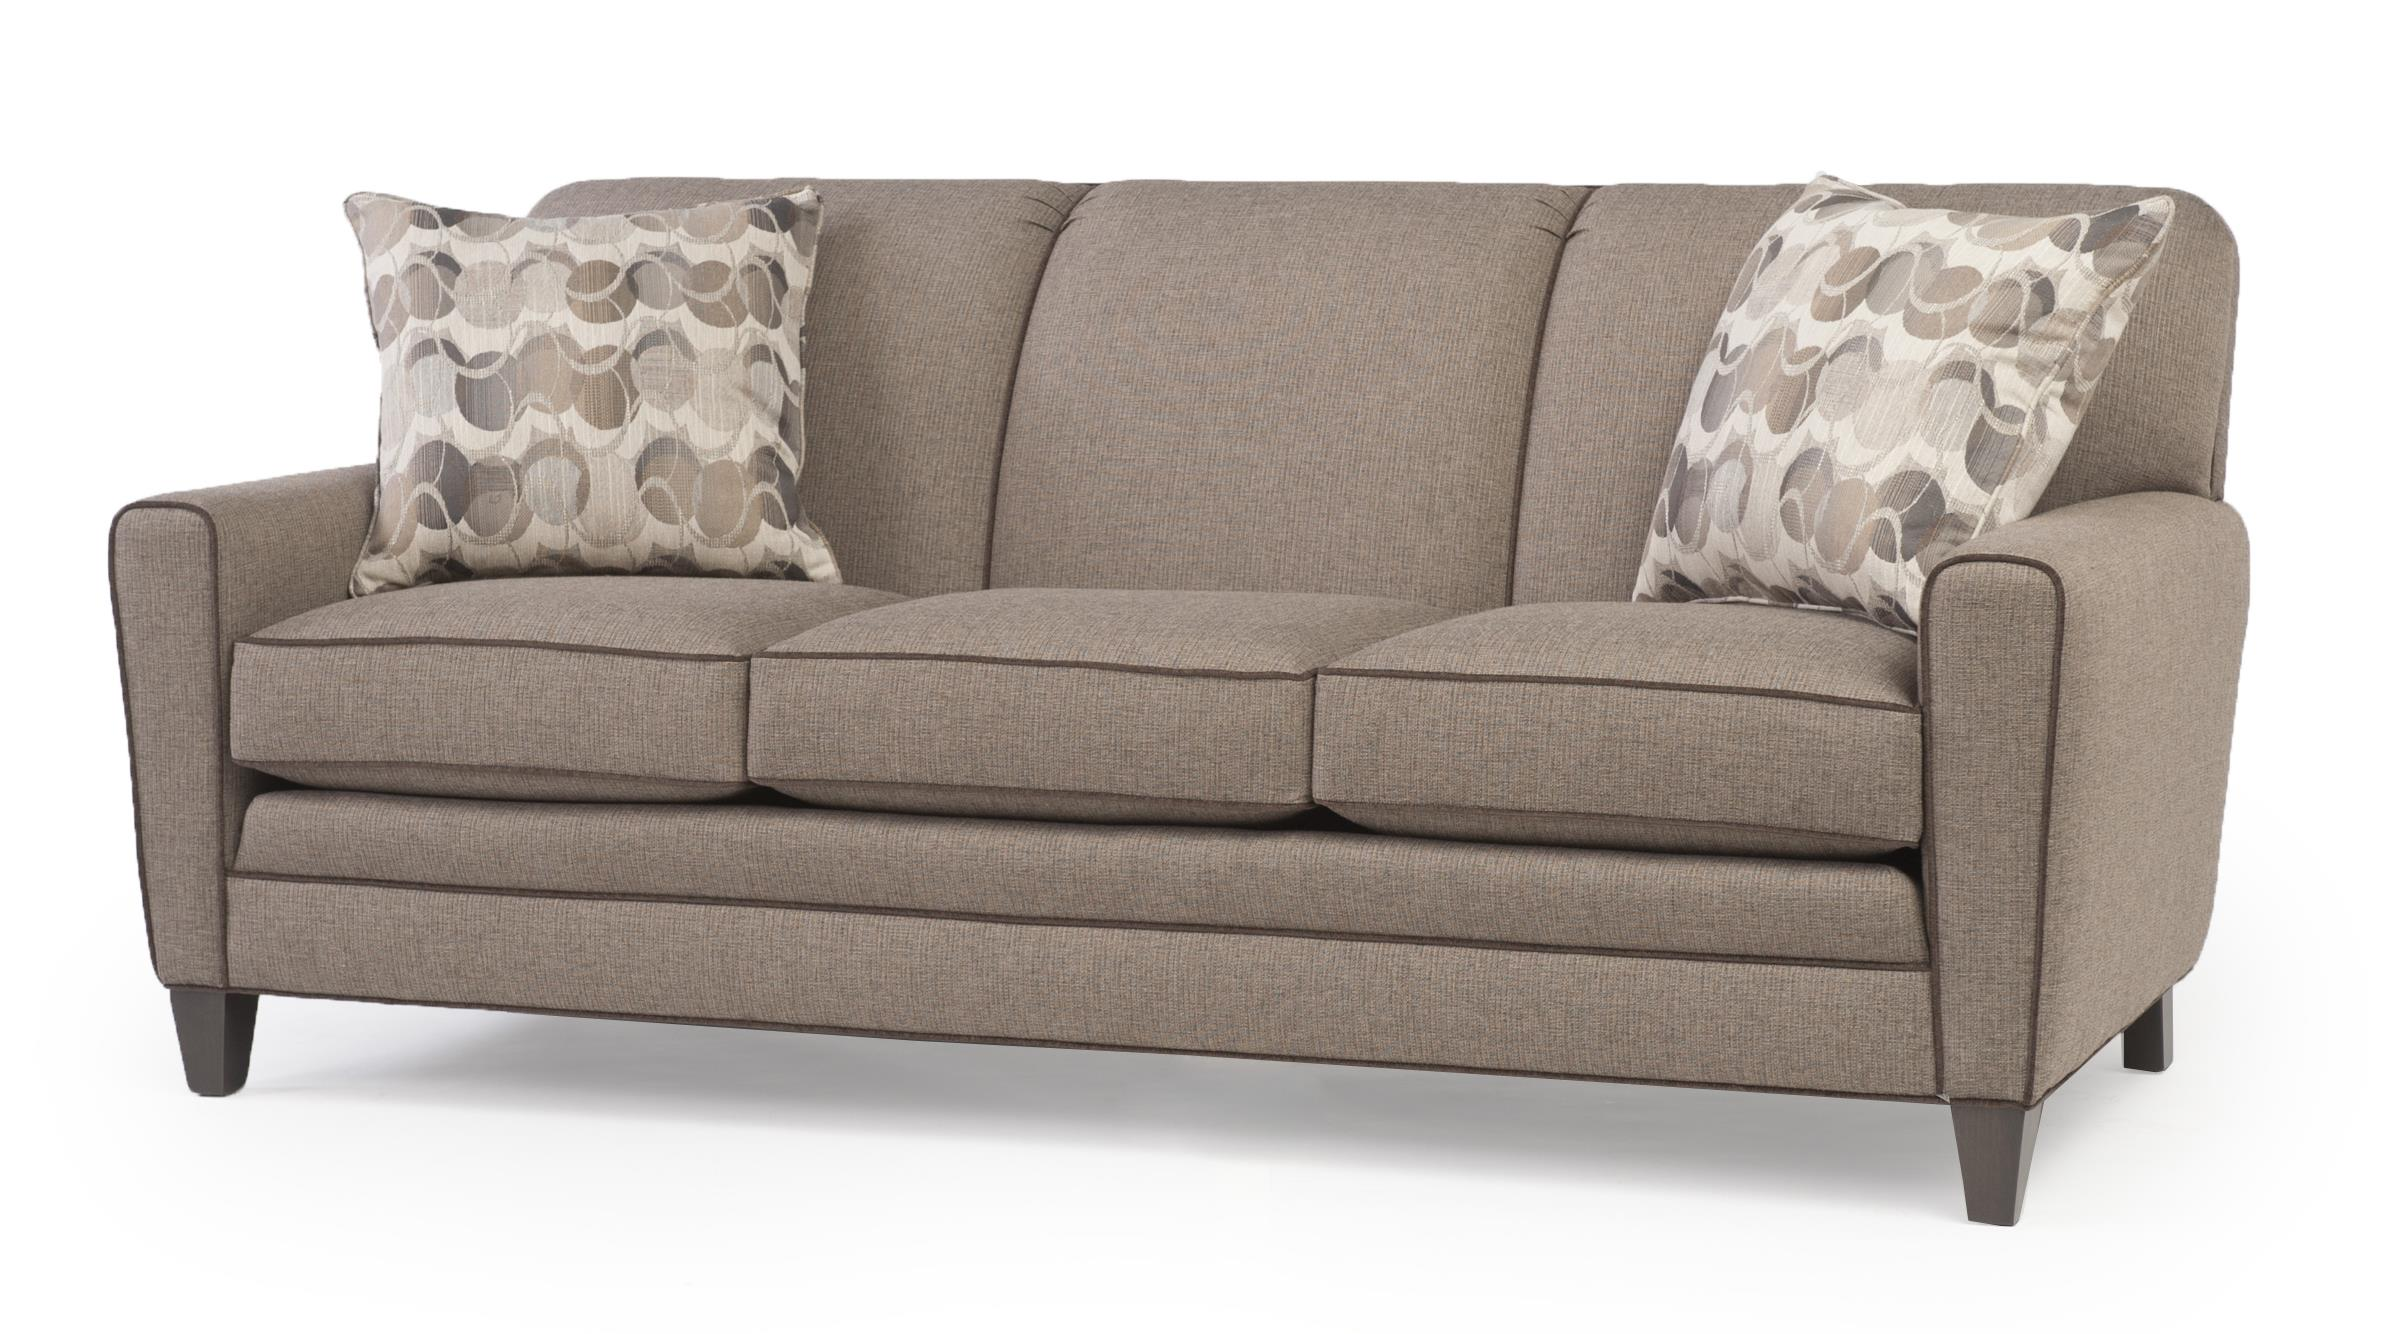 225 Sofa by Smith Brothers at Wayside Furniture